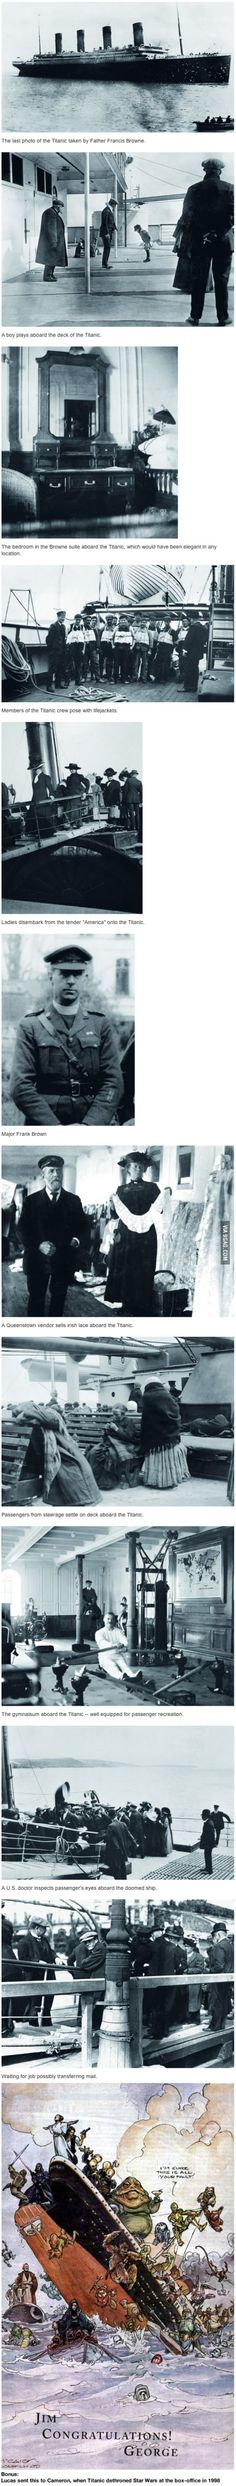 Some Pictures Of The Titanic You've Never Seen